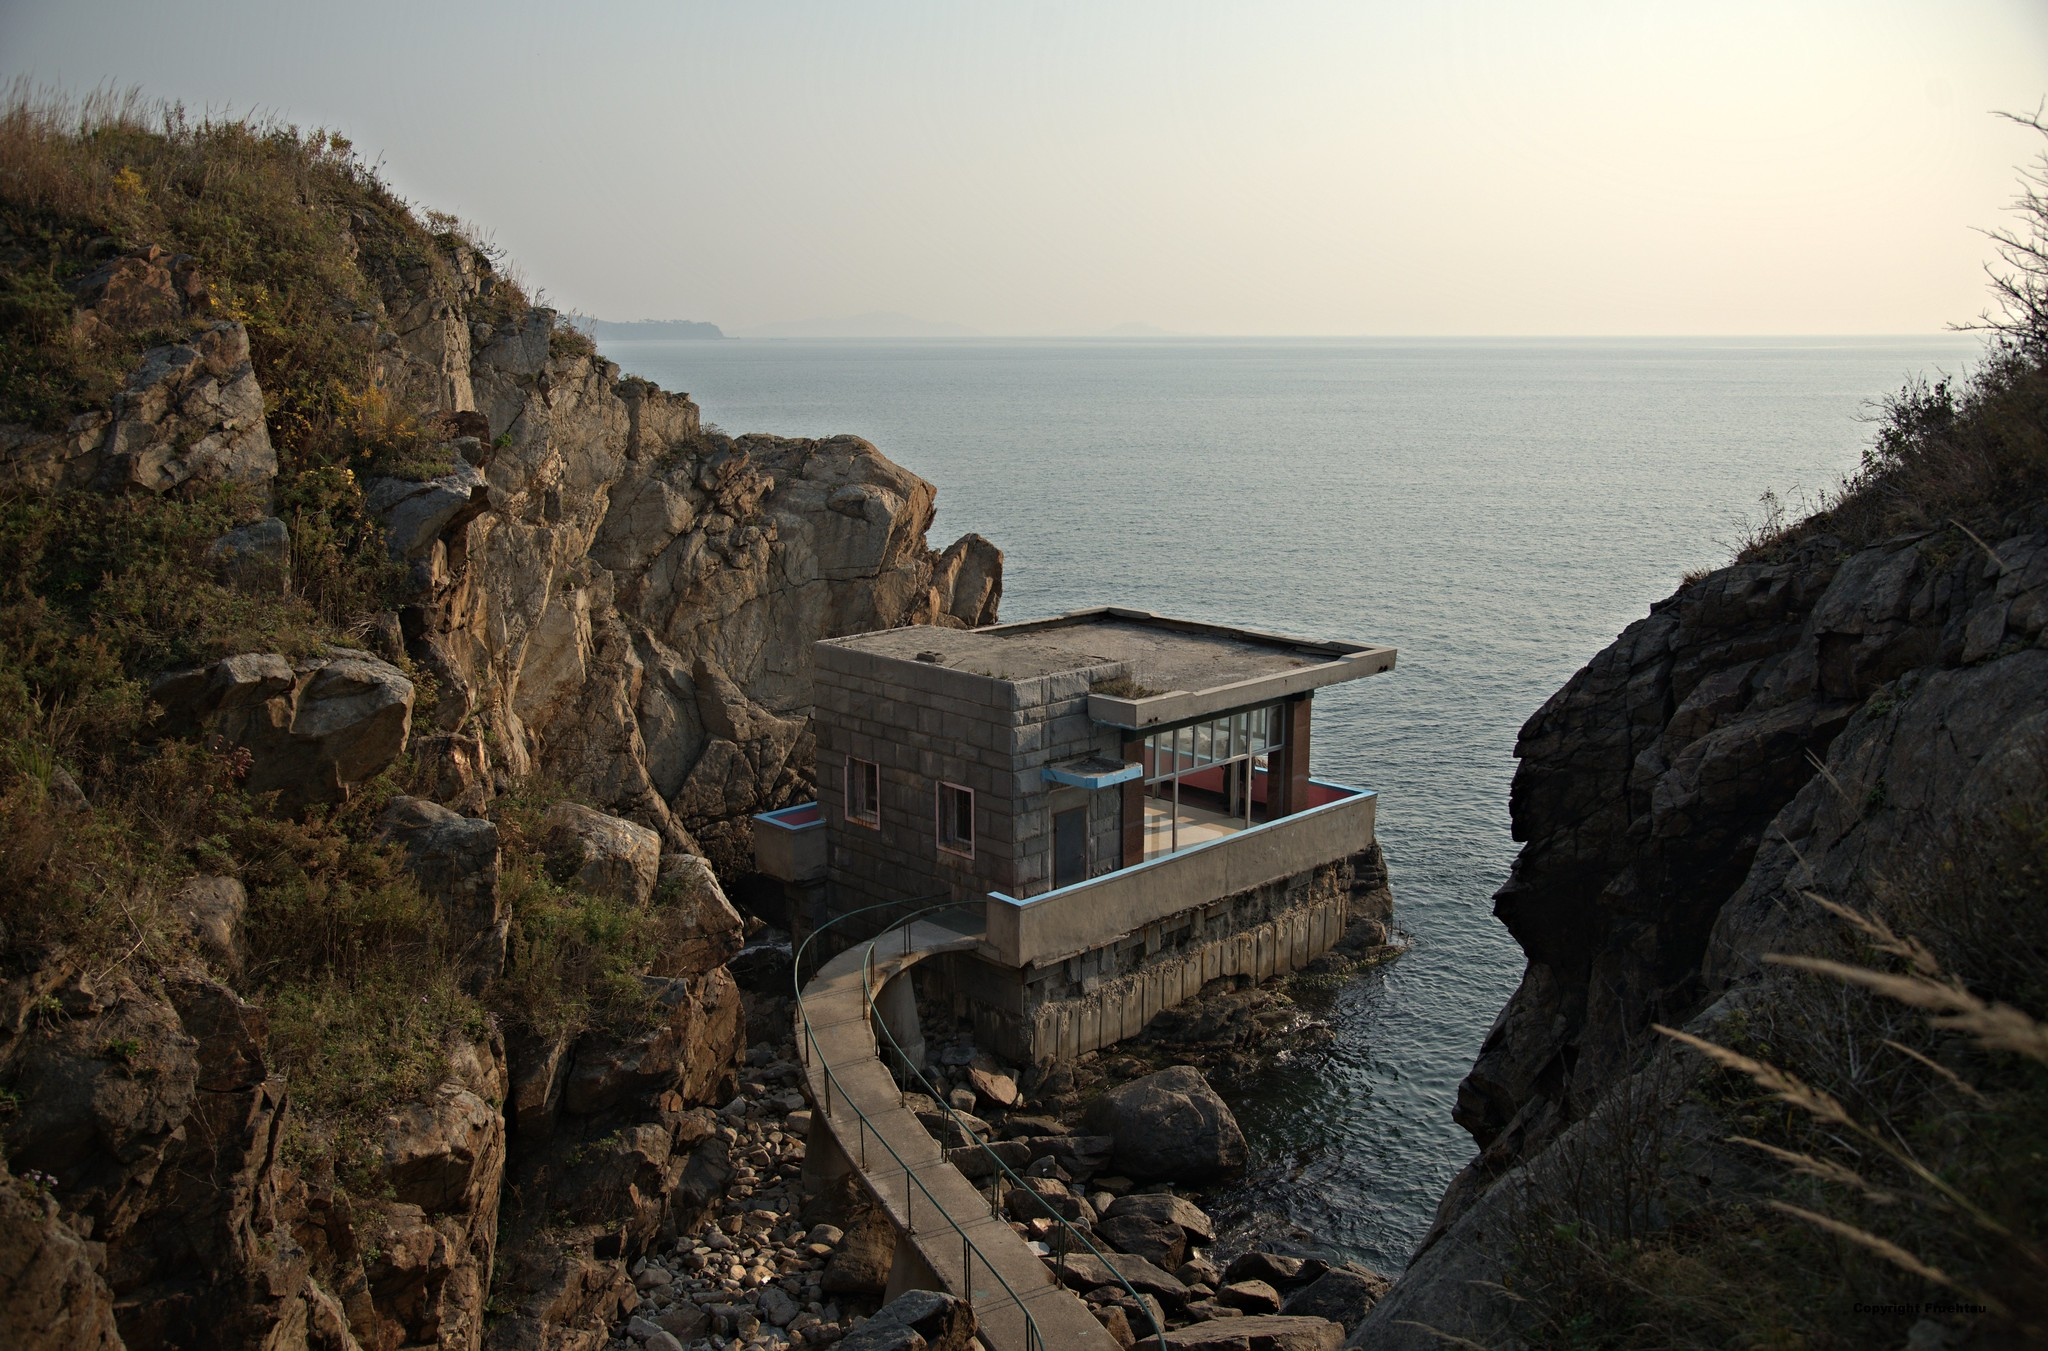 A strangely idyllic North Korean lookout point building on the shore, near Rajin [7238 x 4775] photo by Frühtau